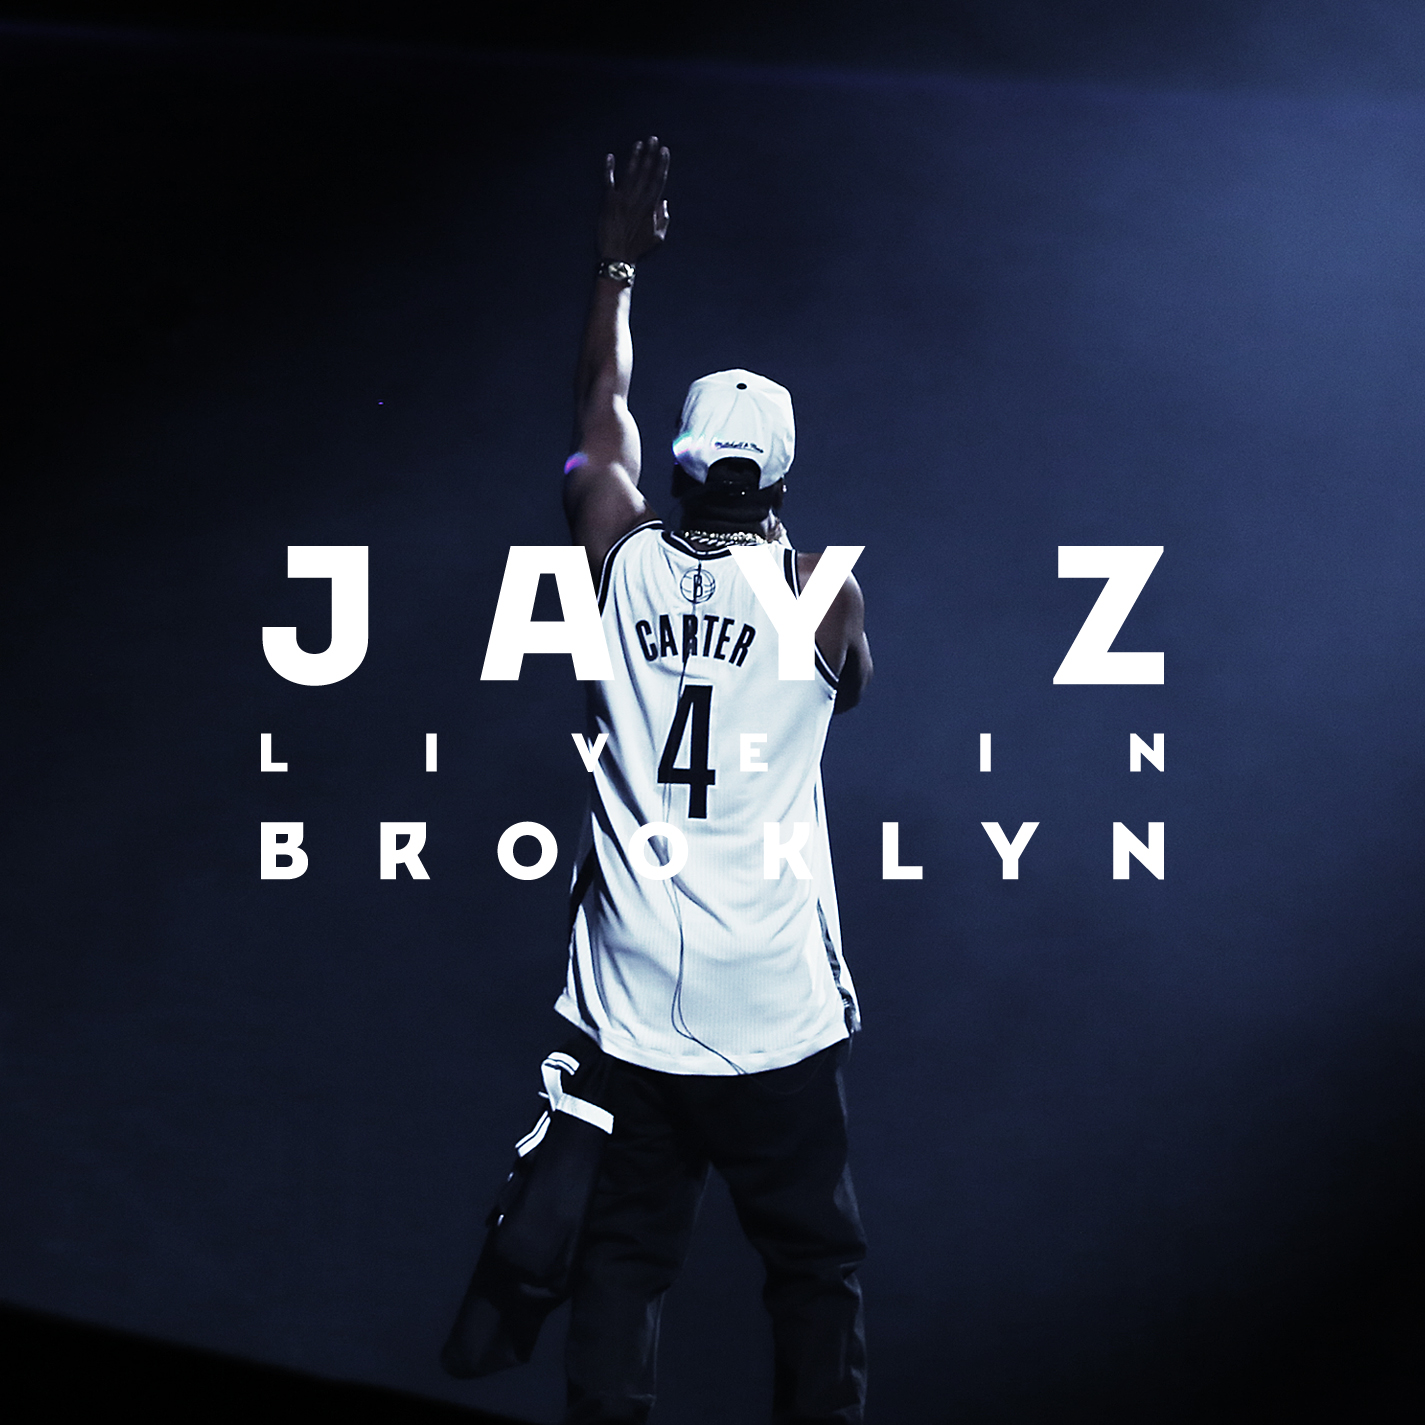 Jay z live at barclays center full performance of final night via malvernweather Image collections